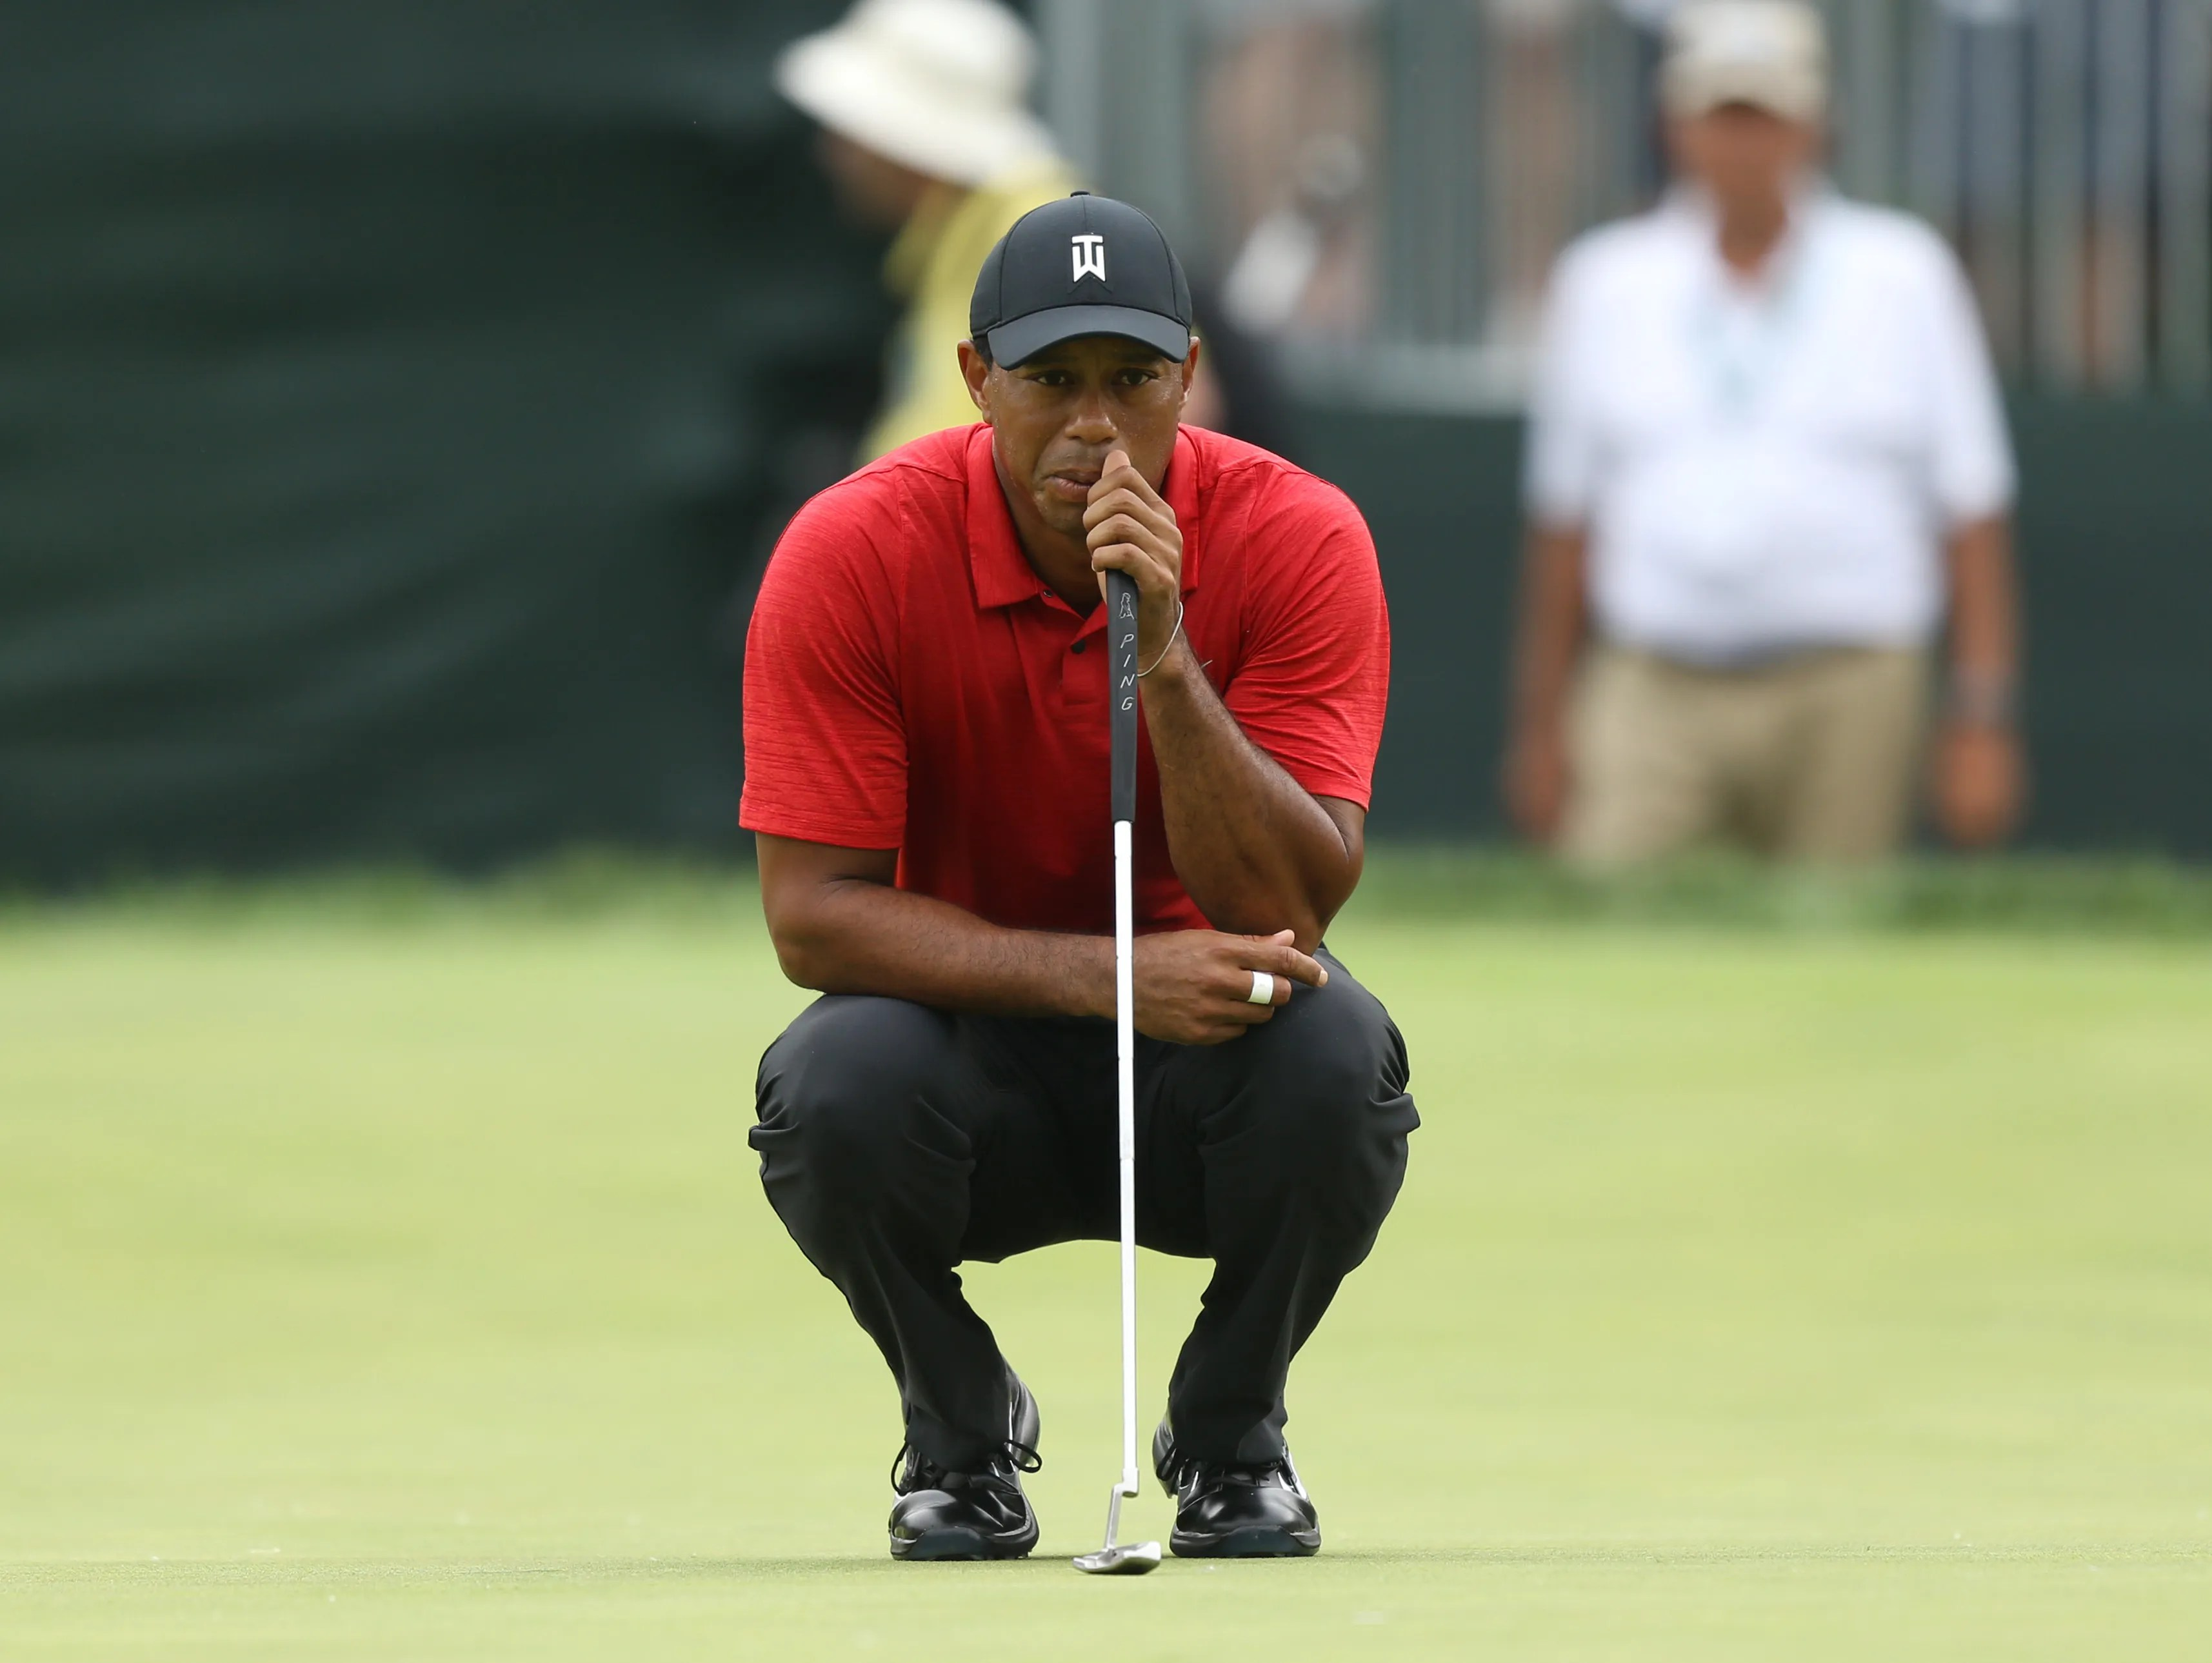 tiger woods today's tournament